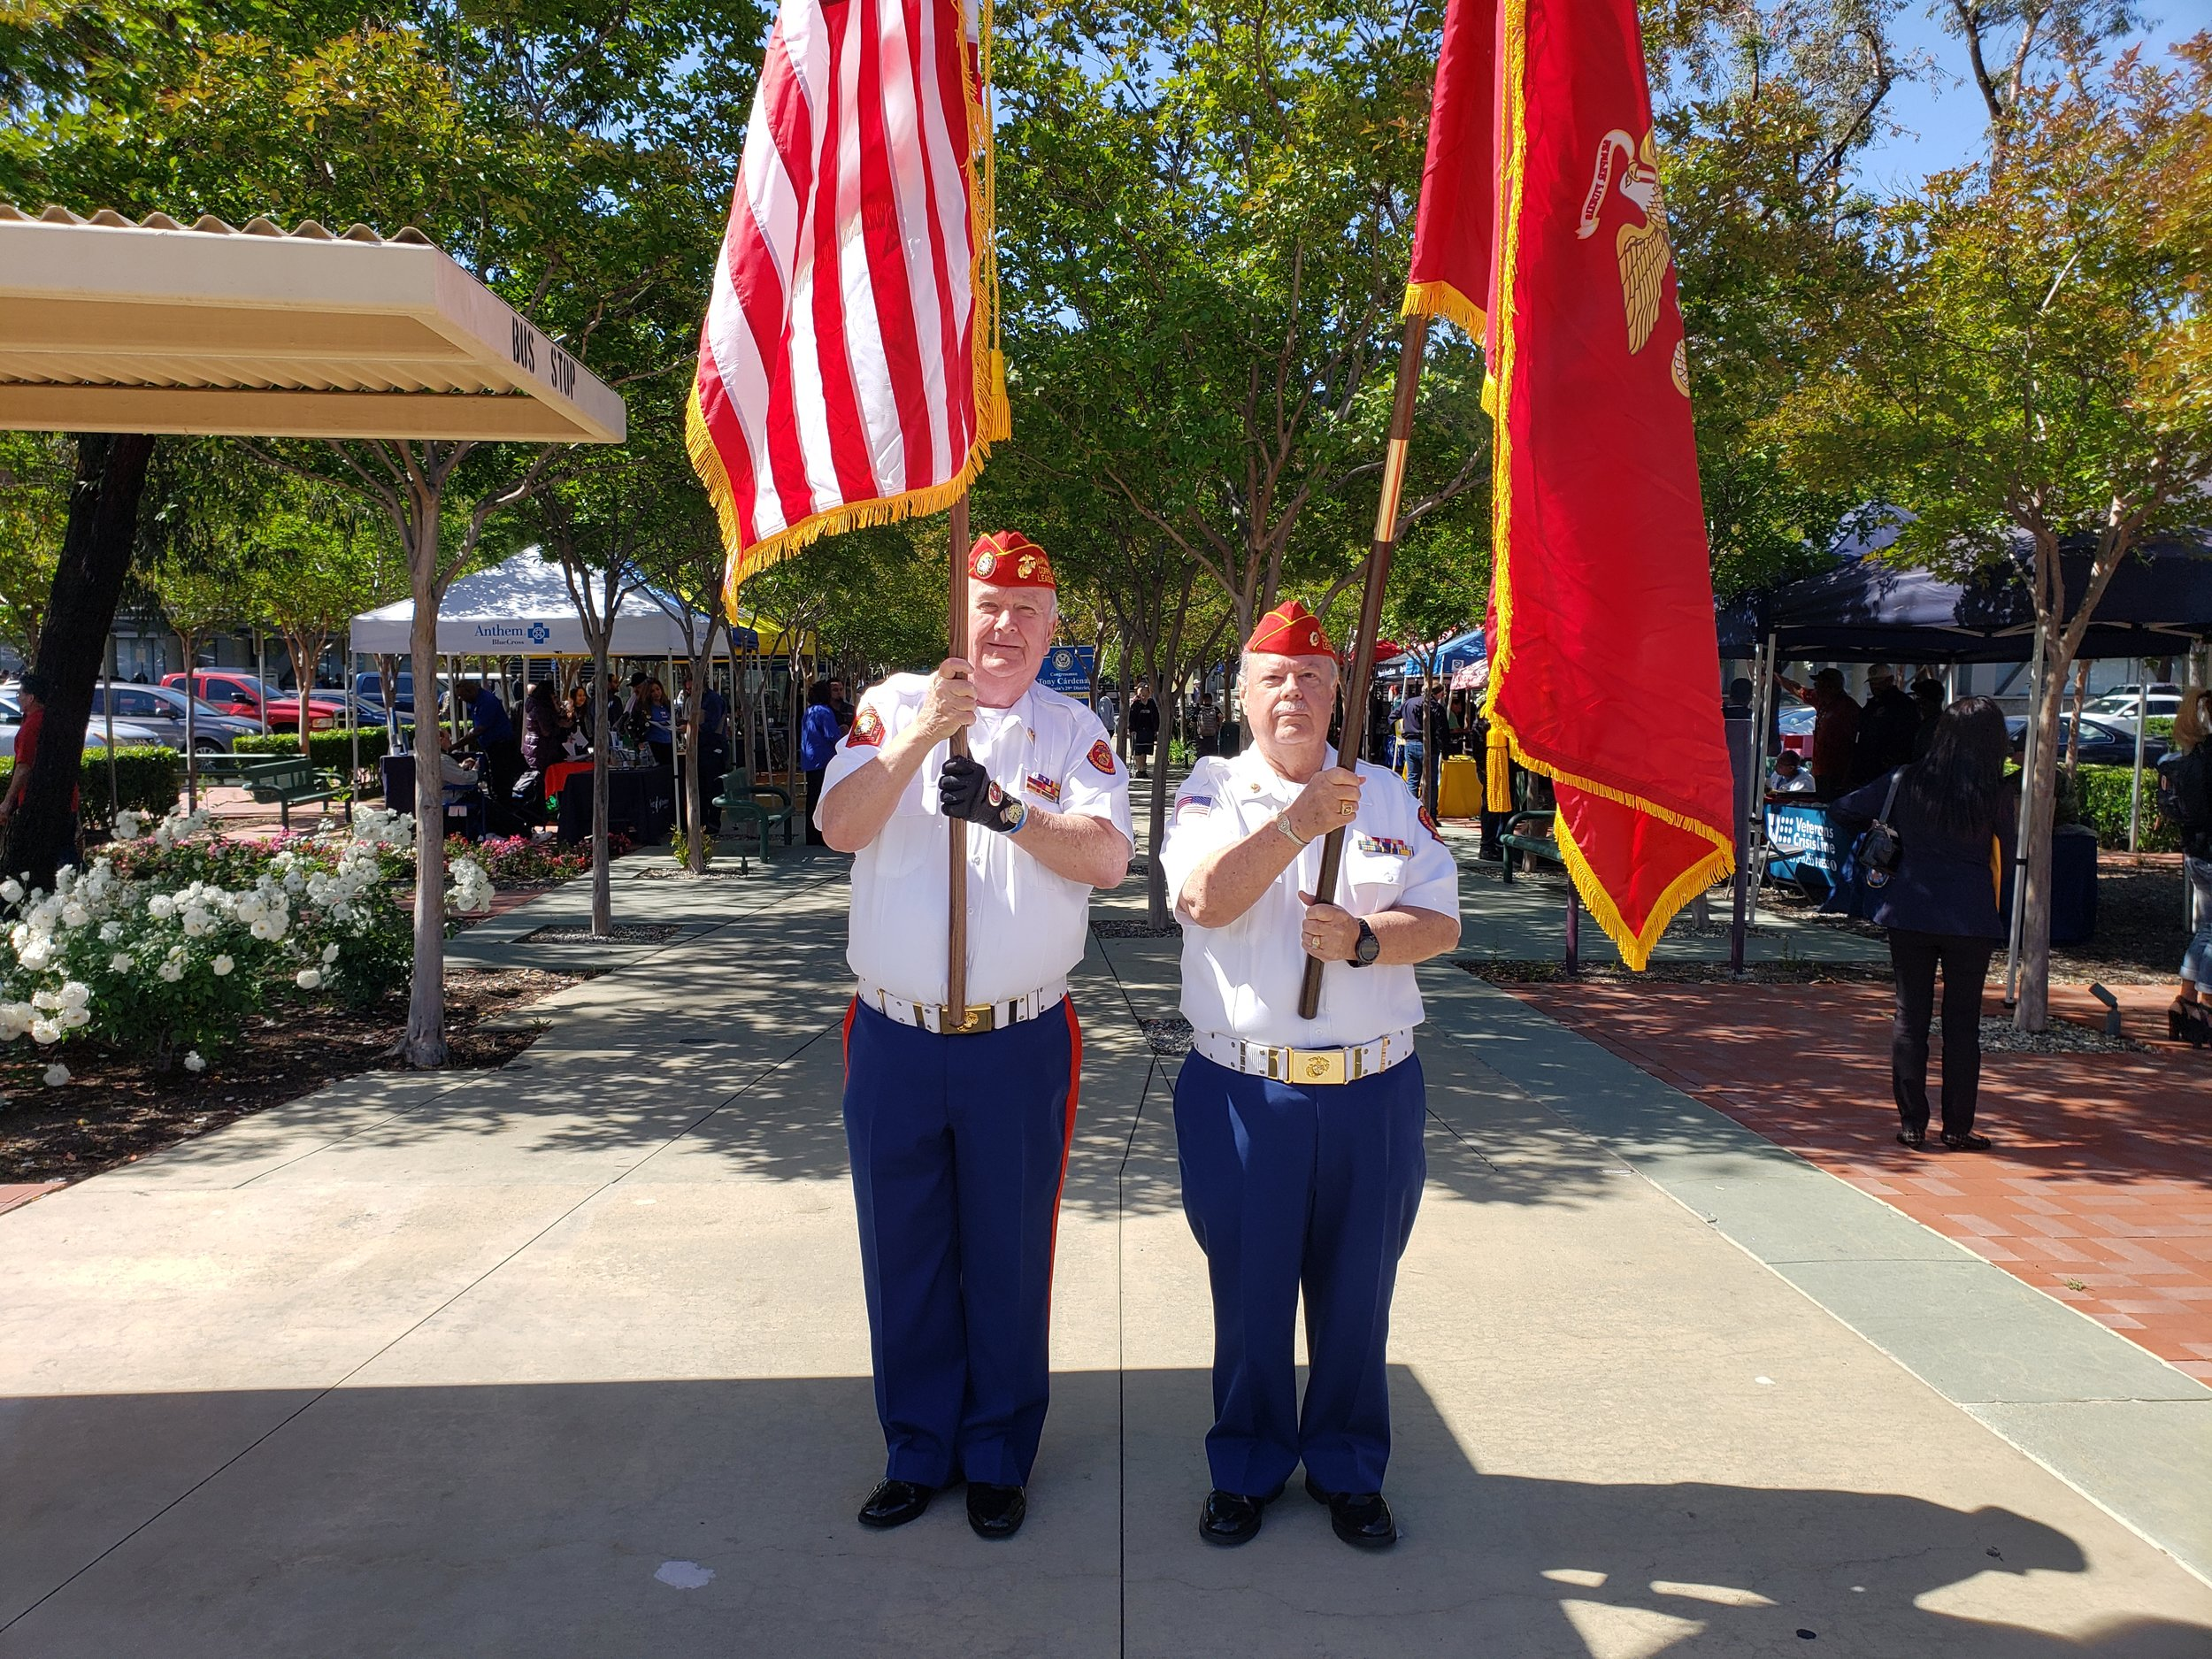 May 17, 2019   Commandant Jennings and Associate of the Year, Dave Opfer, present colors at the VA Sepulveda for Job Day.